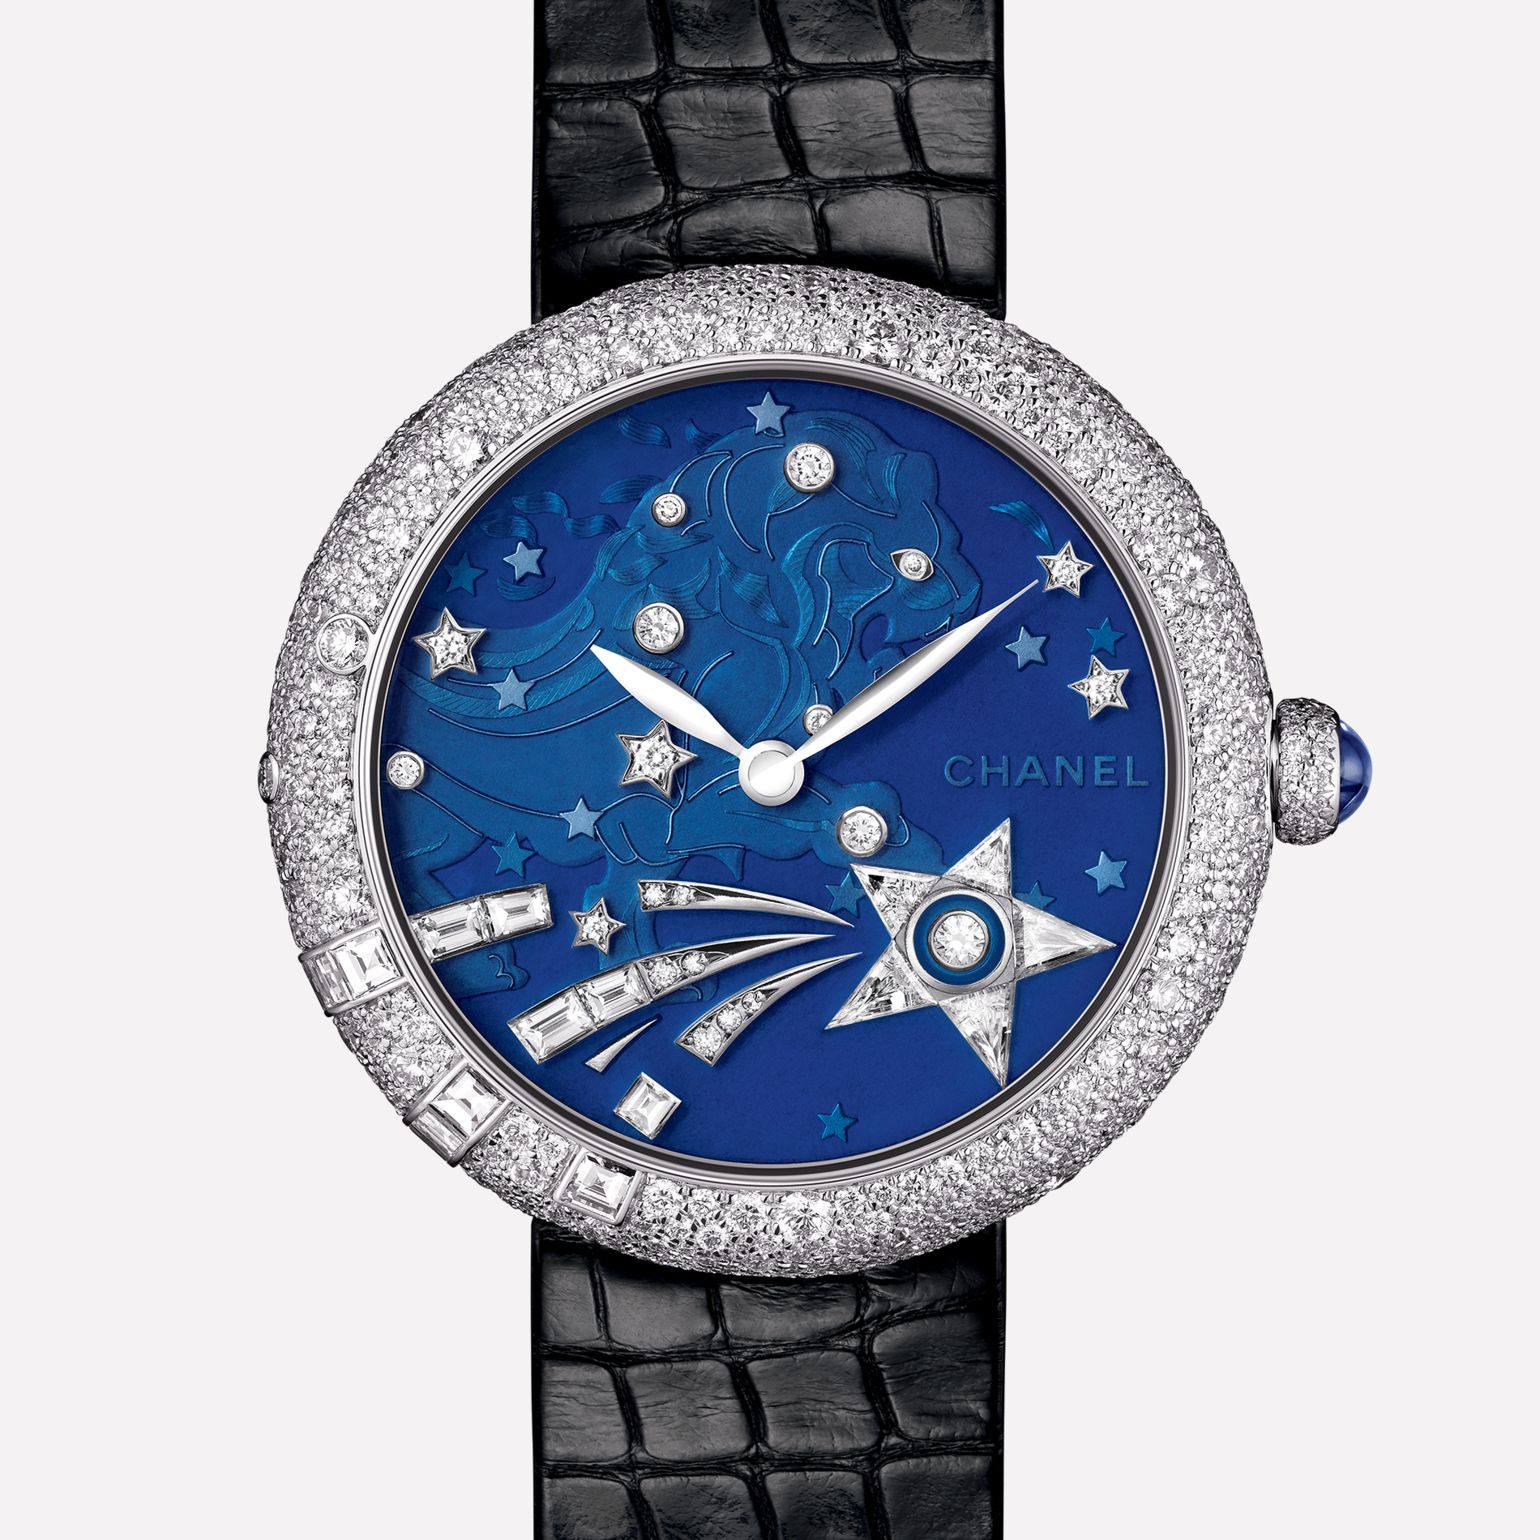 Mademoiselle Privé Watch La Constellation du Lion jewelry - Grand Feu blue translucent enamel and diamonds